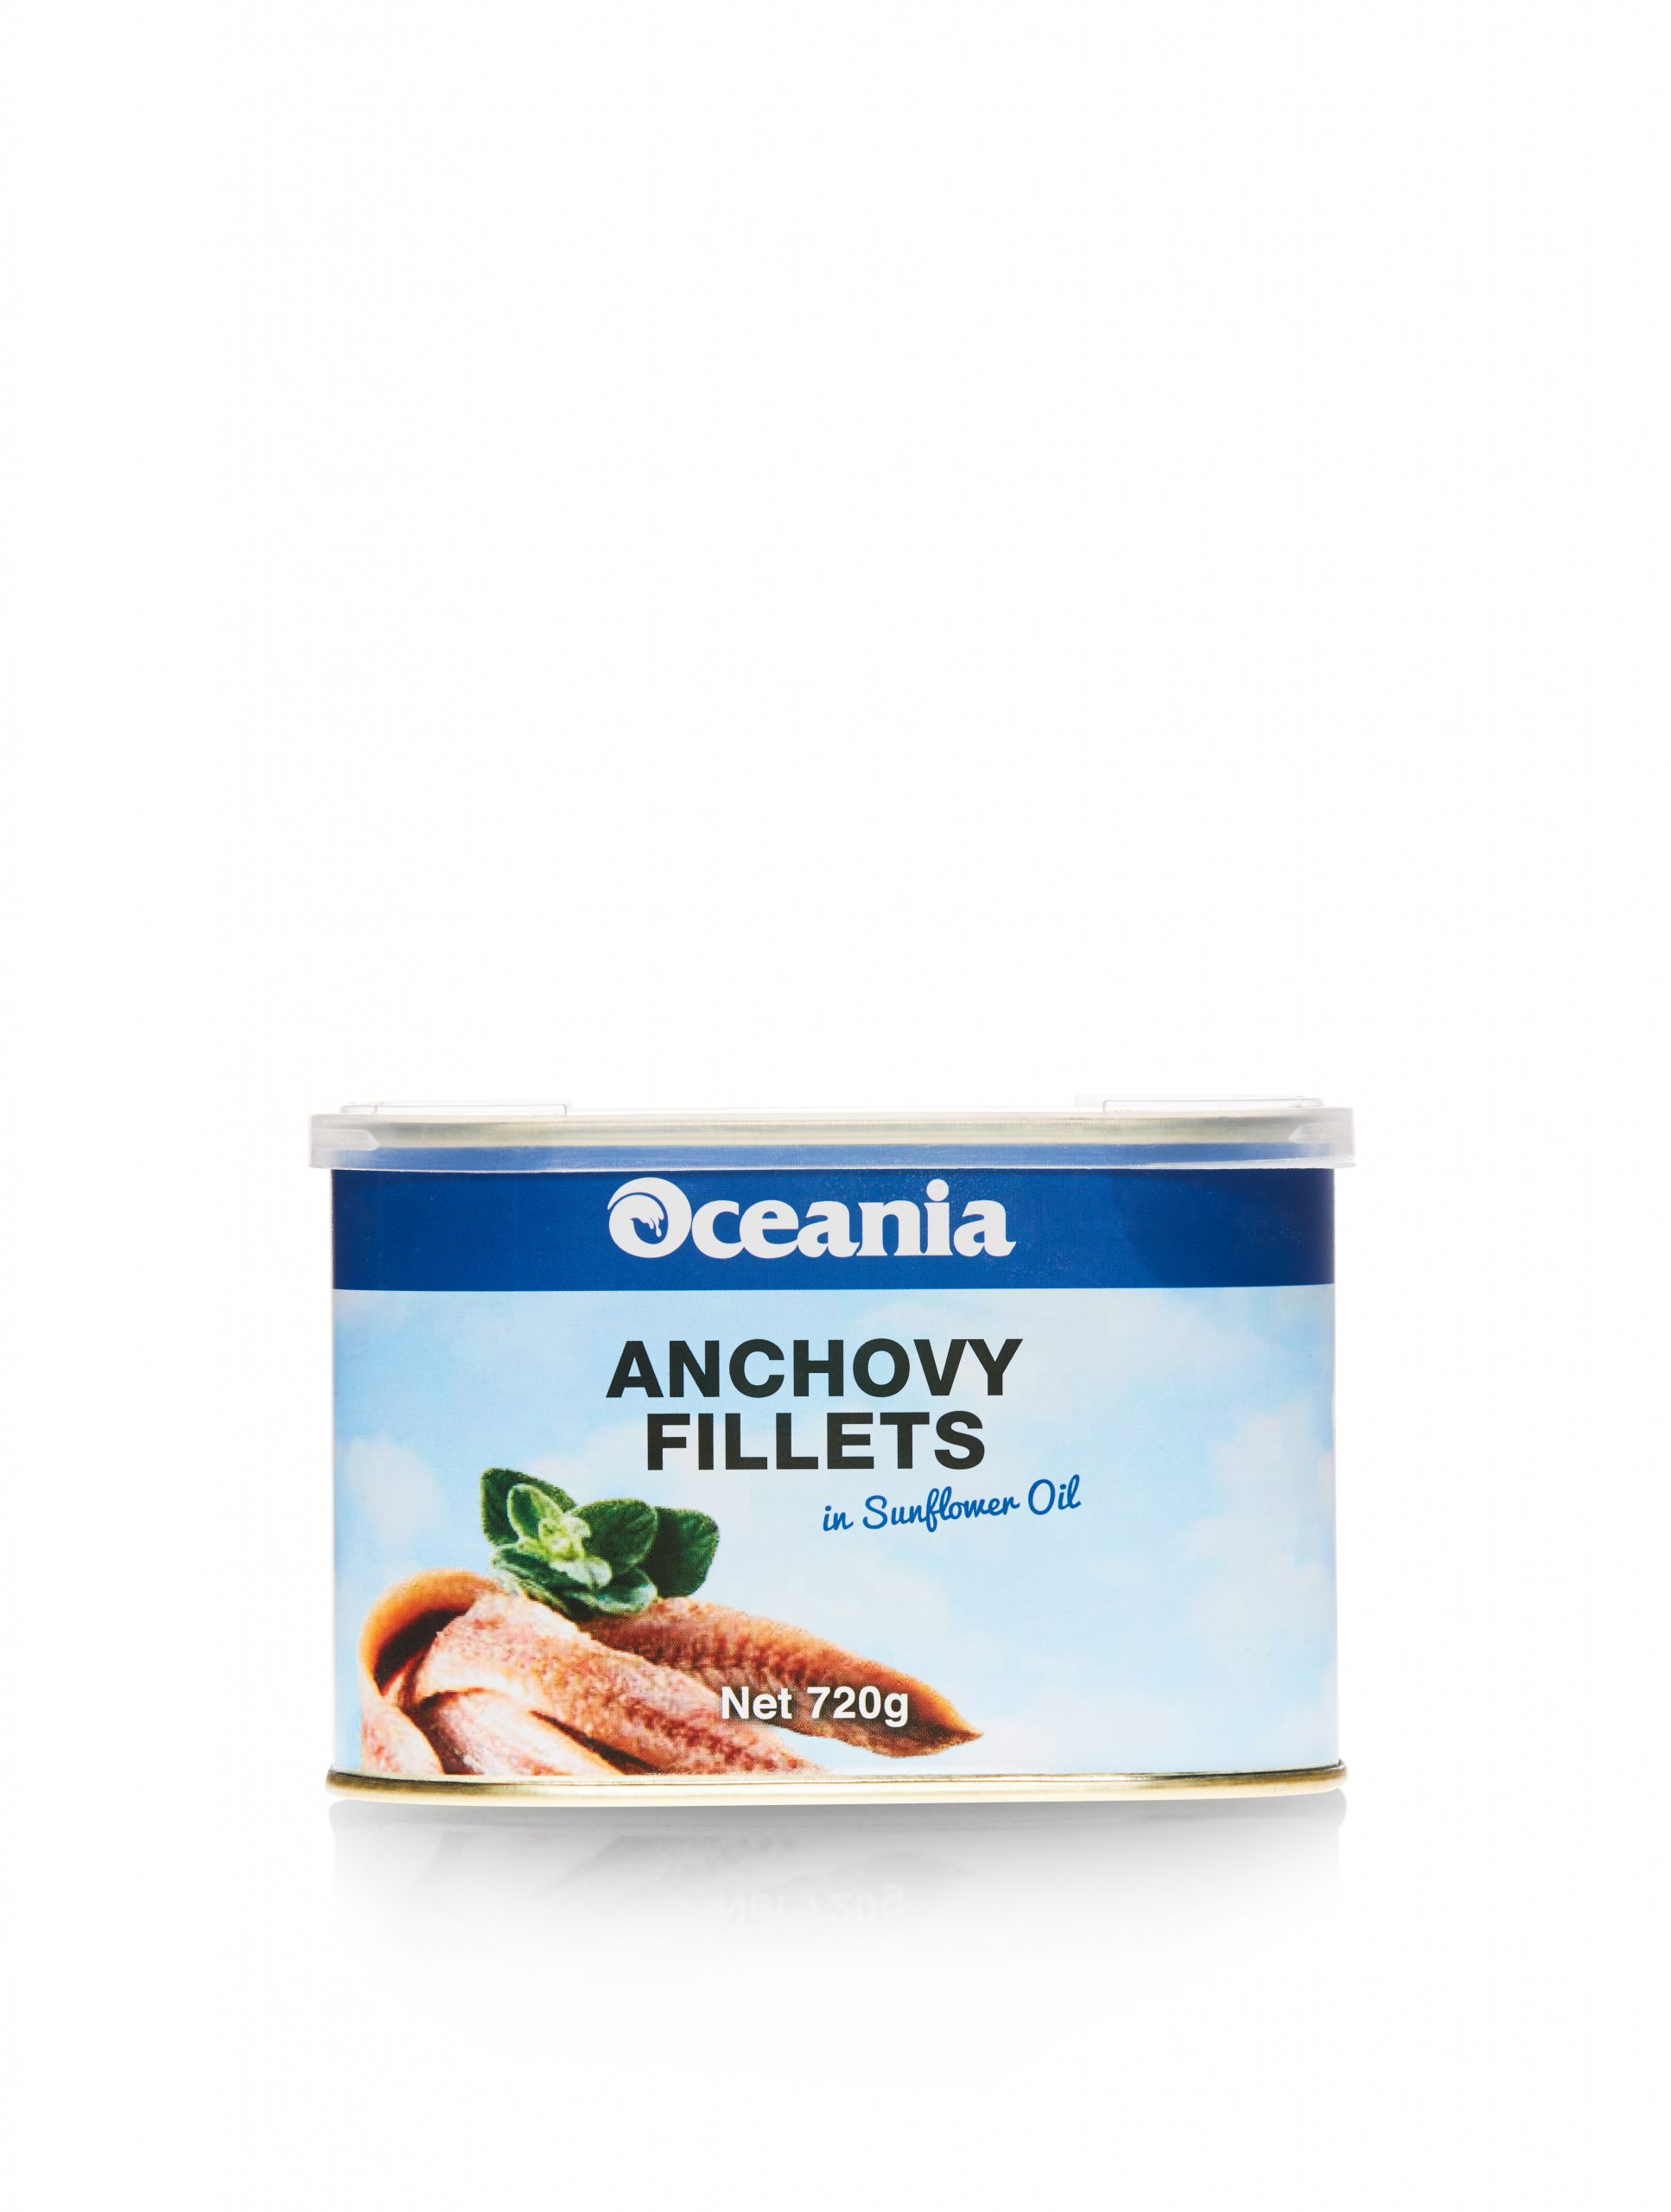 Anchovy Fillets in Sunflower Oil